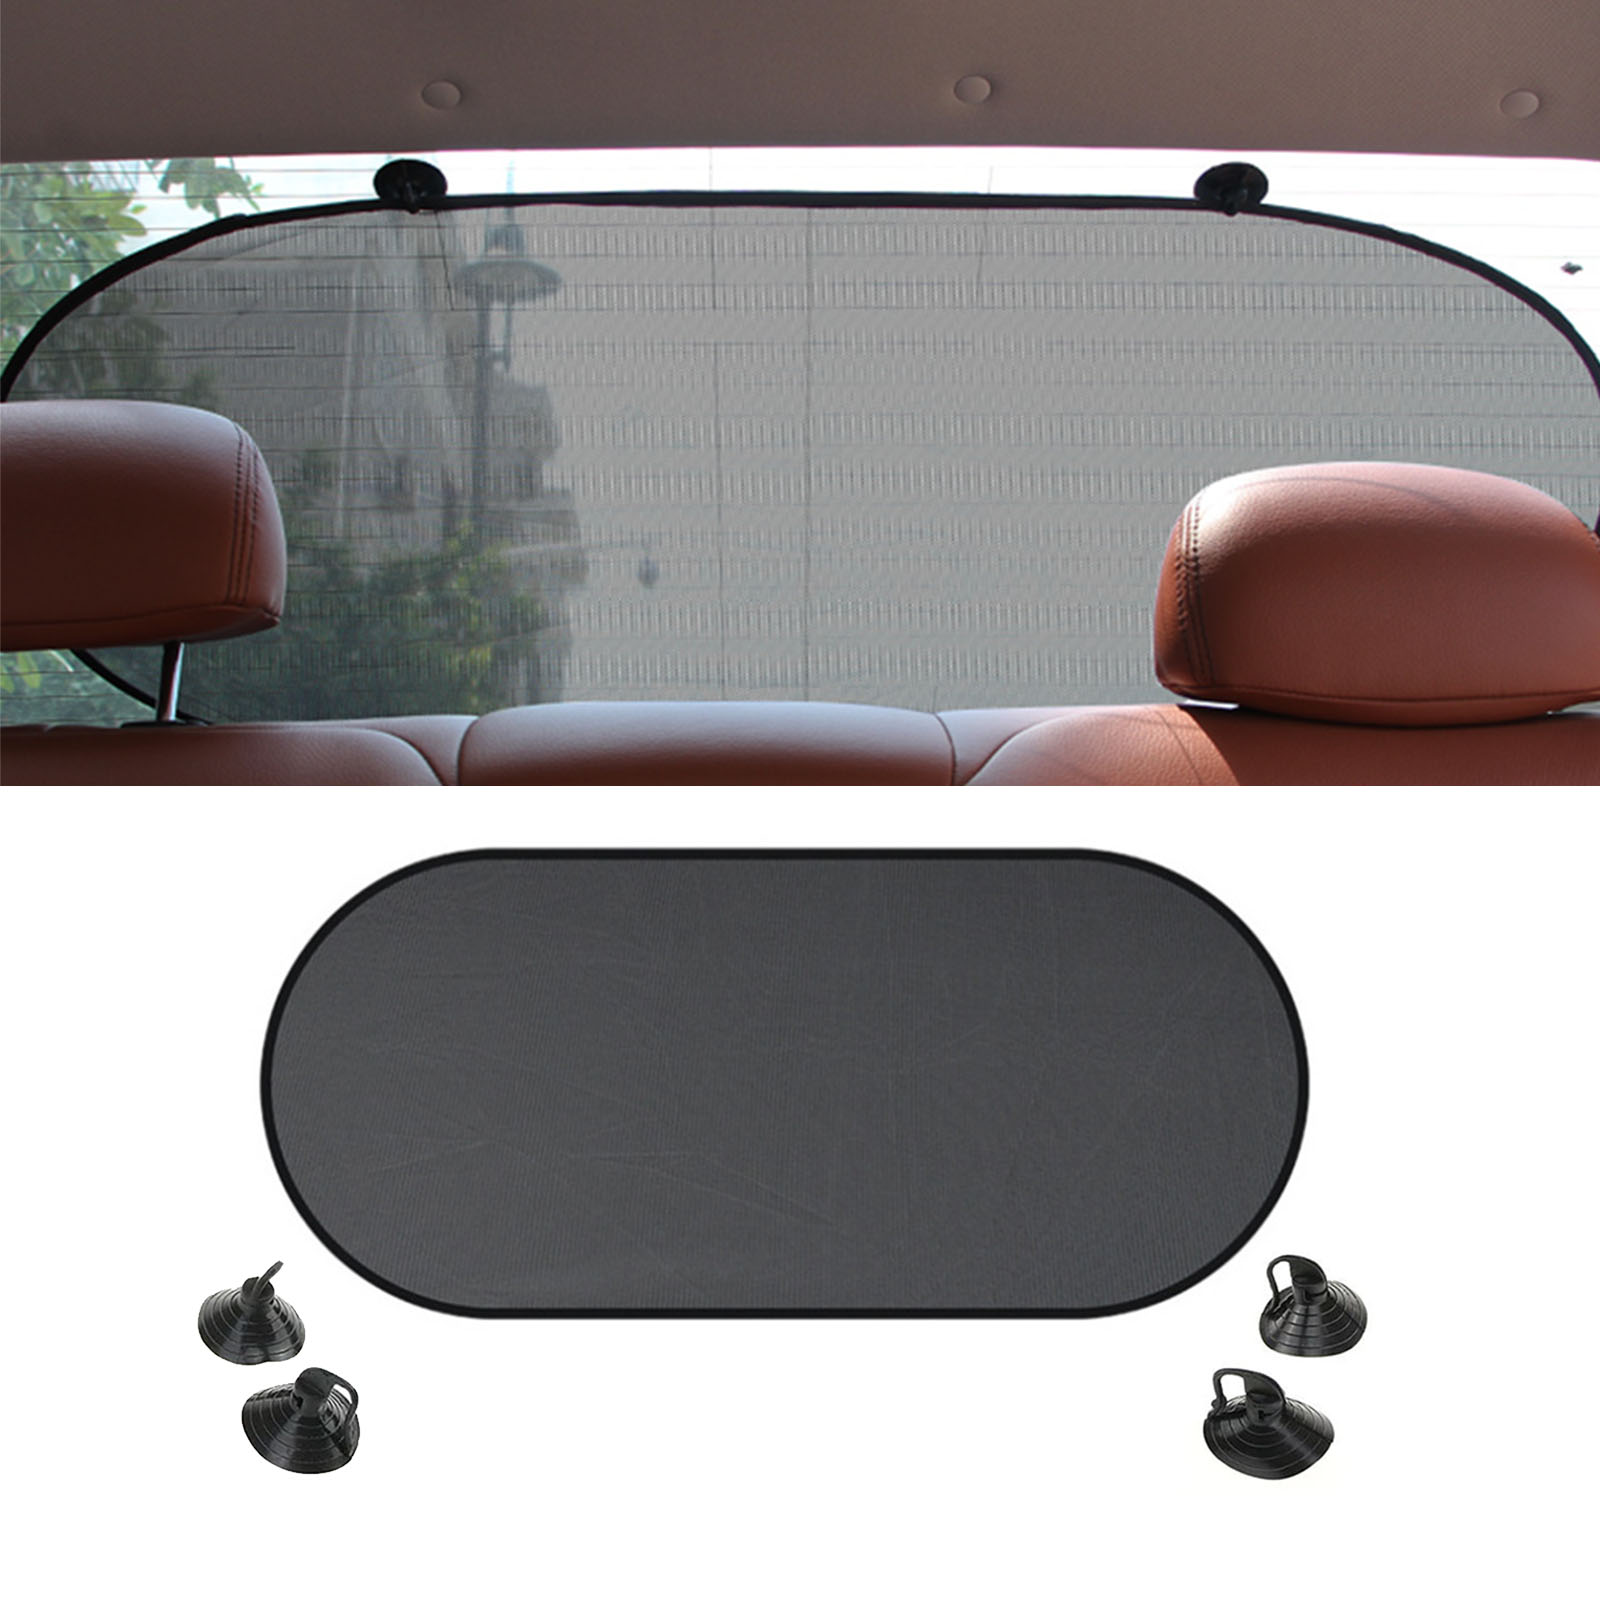 2 x Car Window Sun Shade Children Protector Roller Blind Screen Suction Fixings